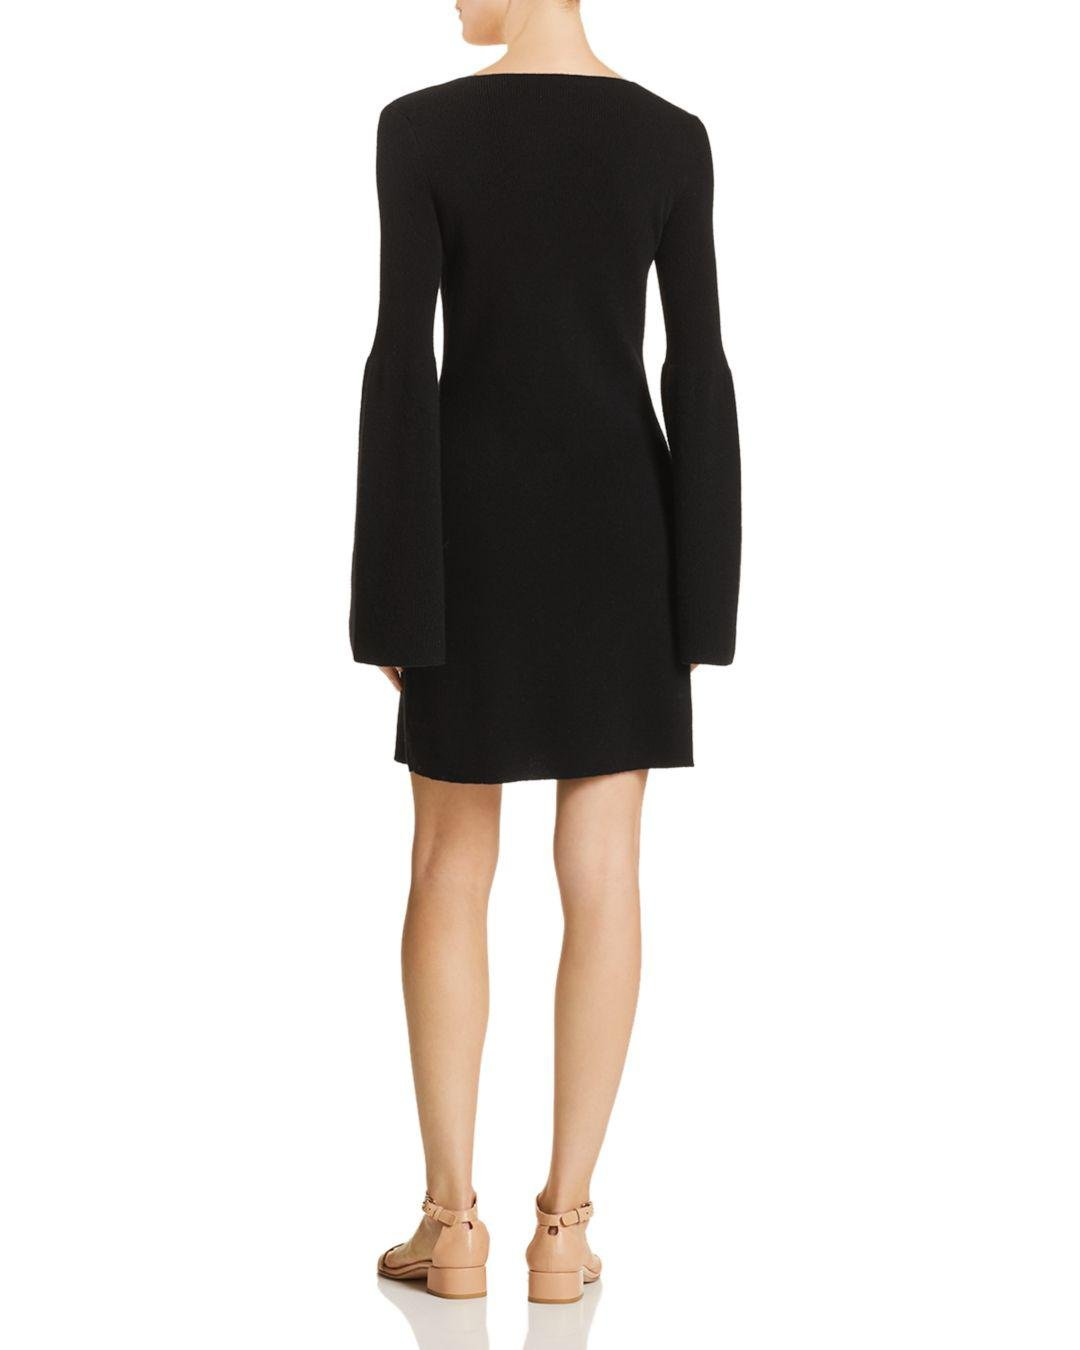 7922d0c257b Lyst - Theory Cashmere Sweater Dress in Black